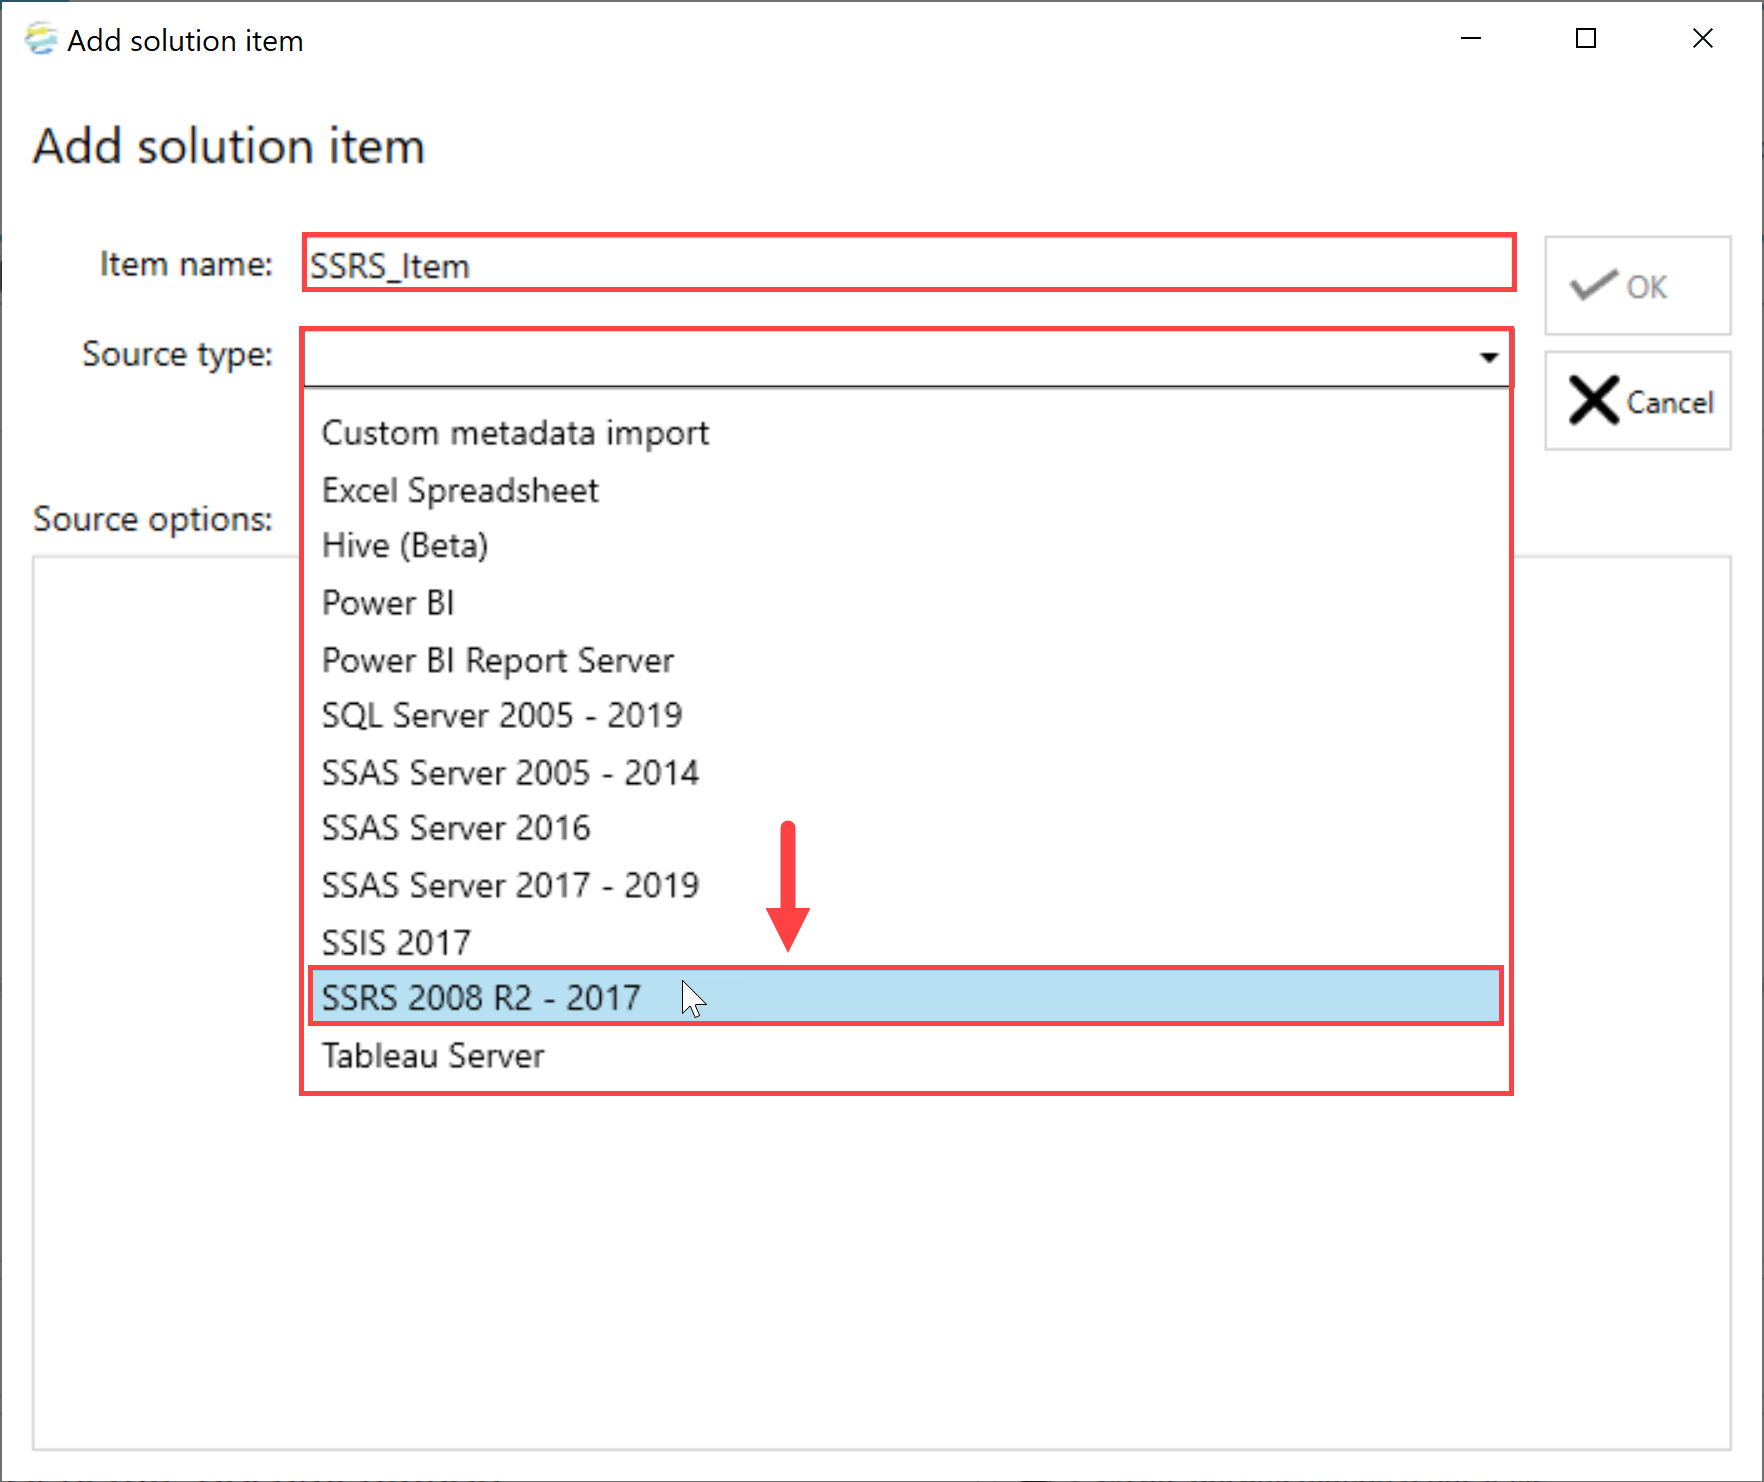 DOC xPress Add Solution Item SSRS 2008 R2 - 2017